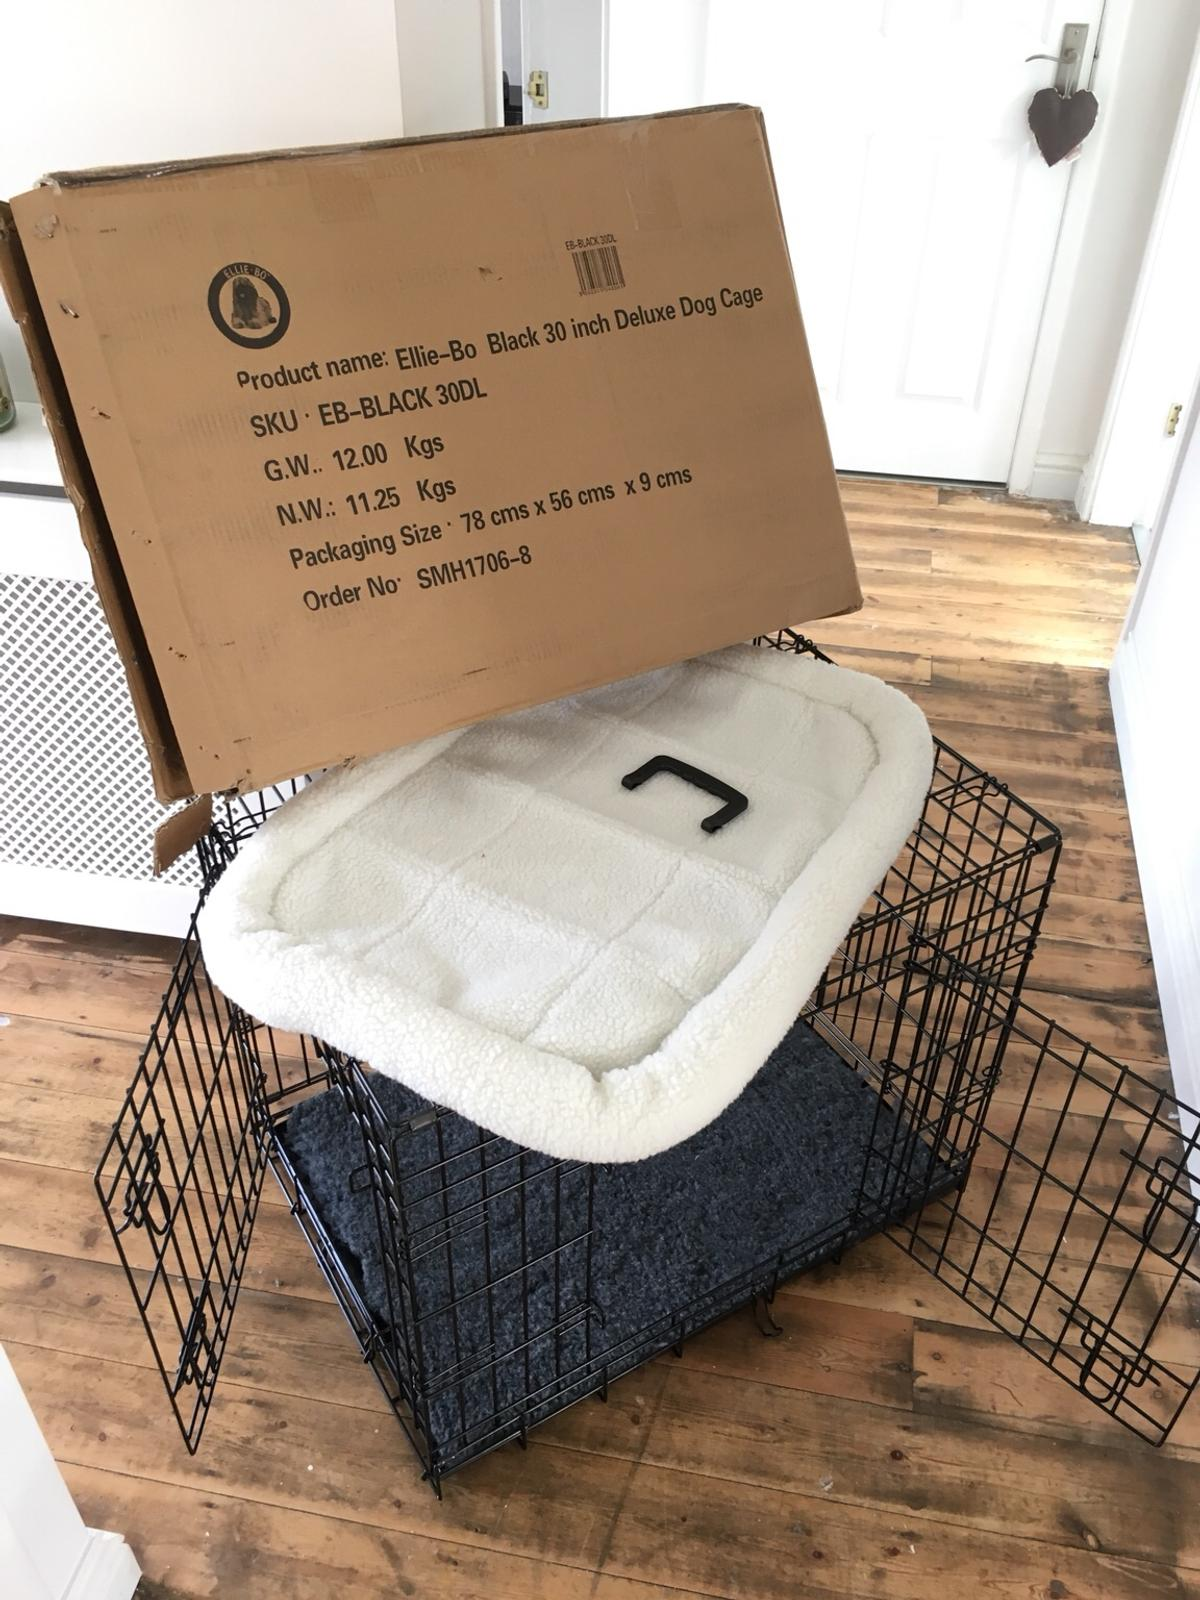 Incredible Ellie Bo Dog Crate And Cushion Brand New Machost Co Dining Chair Design Ideas Machostcouk